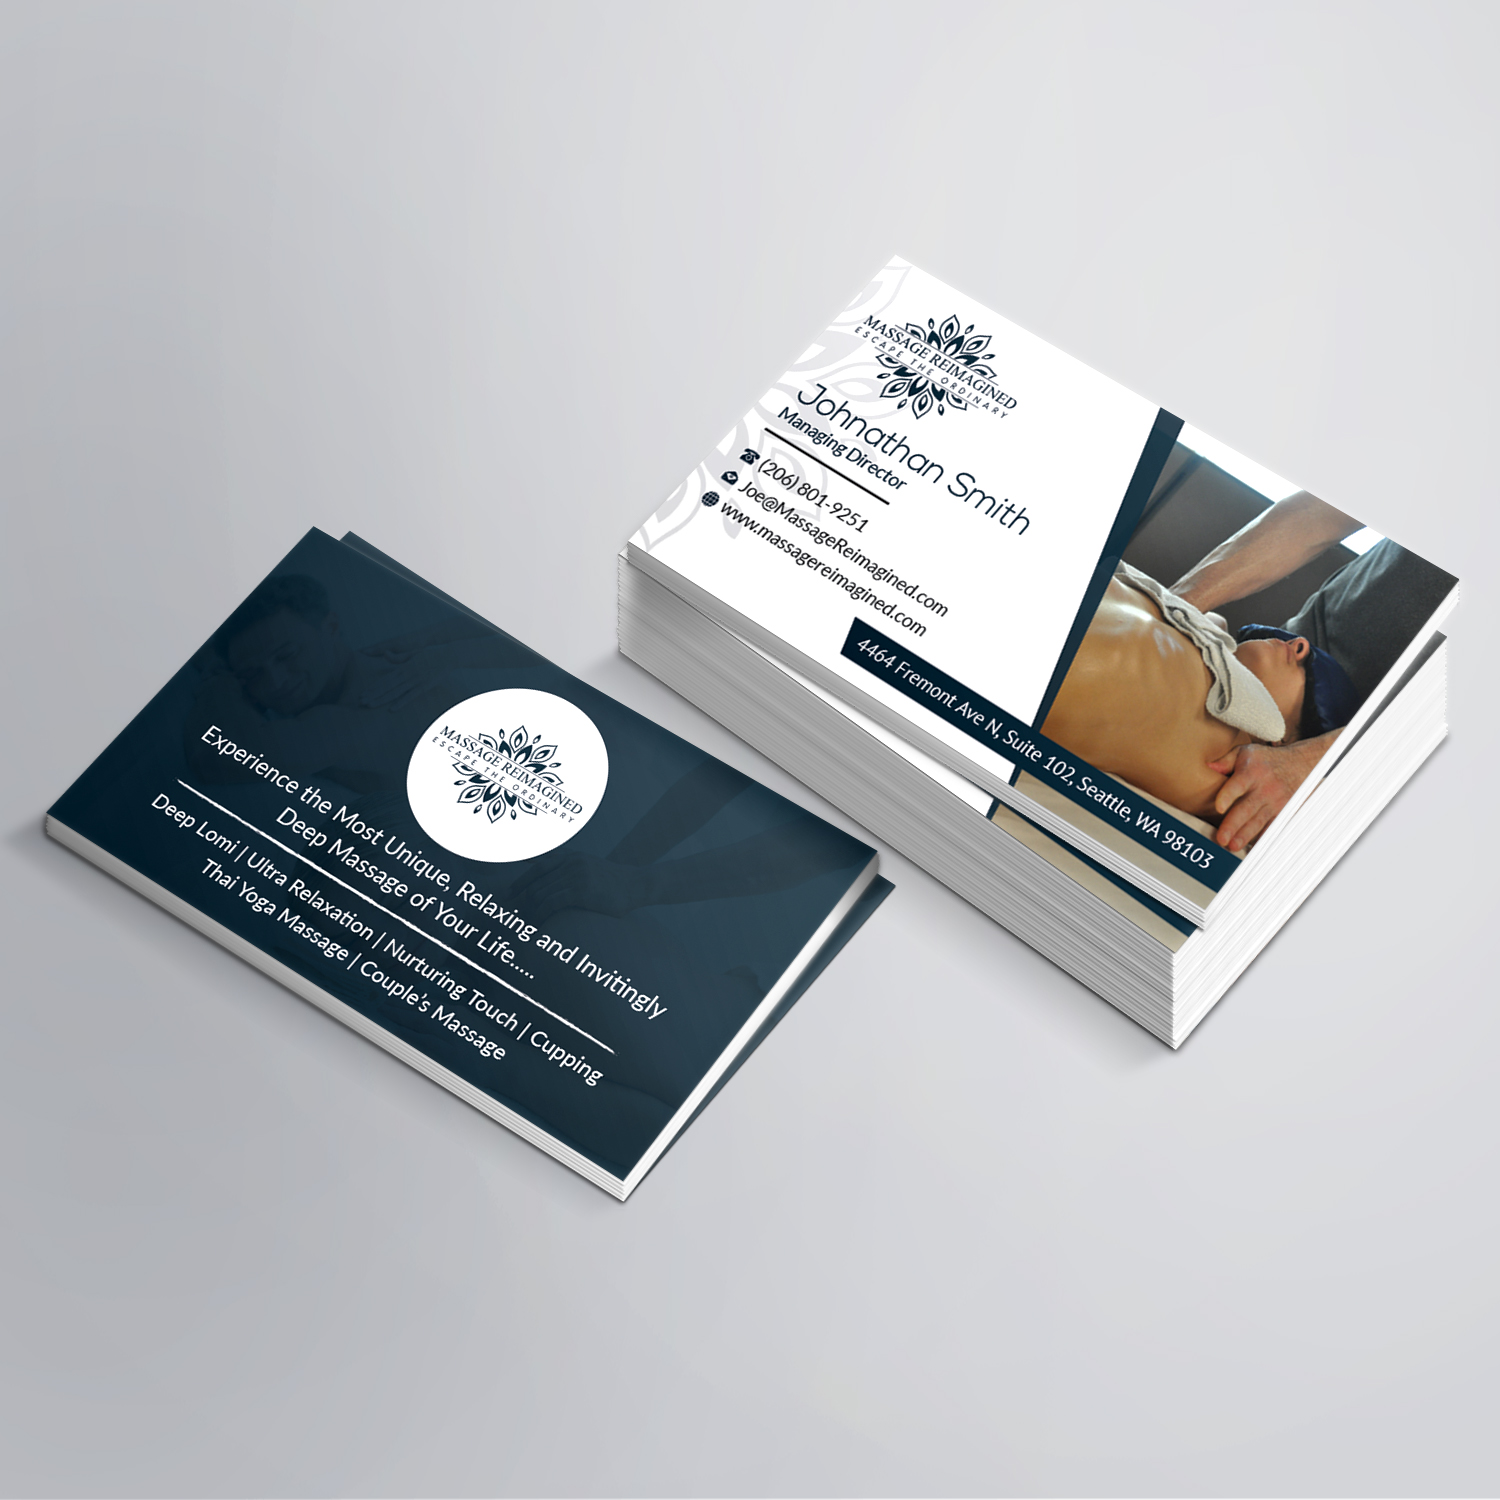 Elegant playful massage business card design for a company by business card design by sudipta sen for this project design 16315048 colourmoves